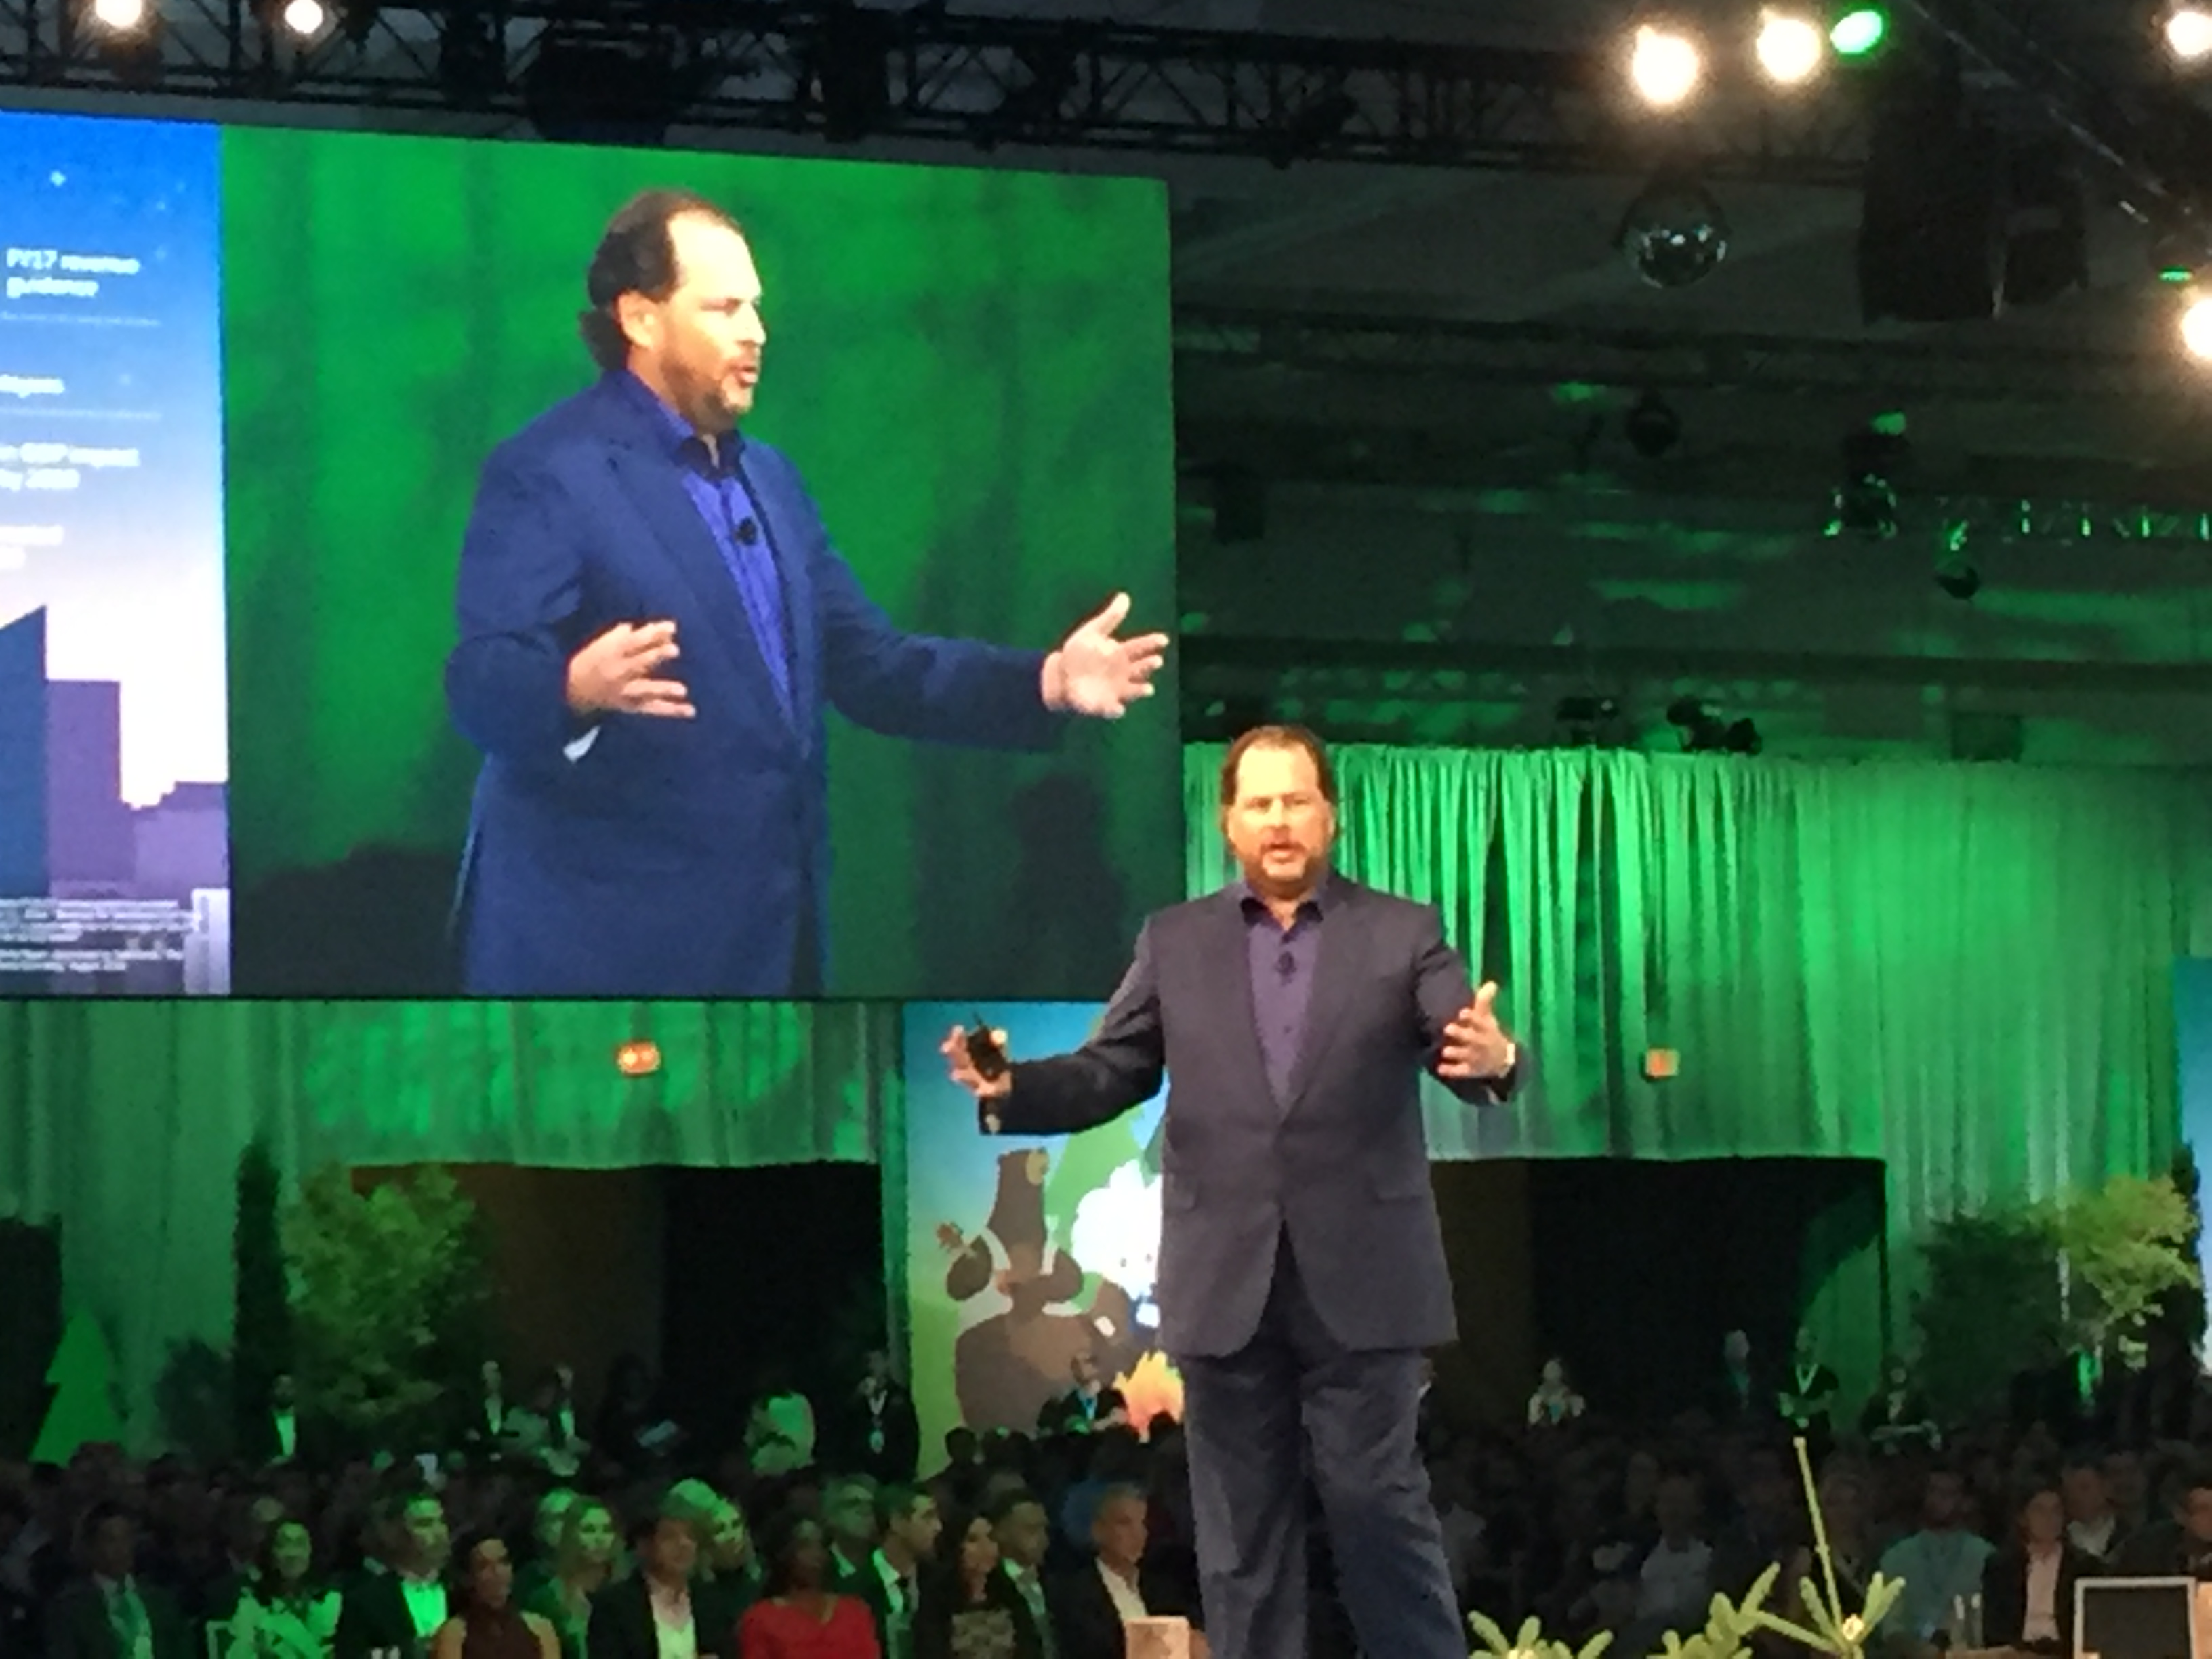 Salesforce CEO Marc Benioff at Dreamforce 2016